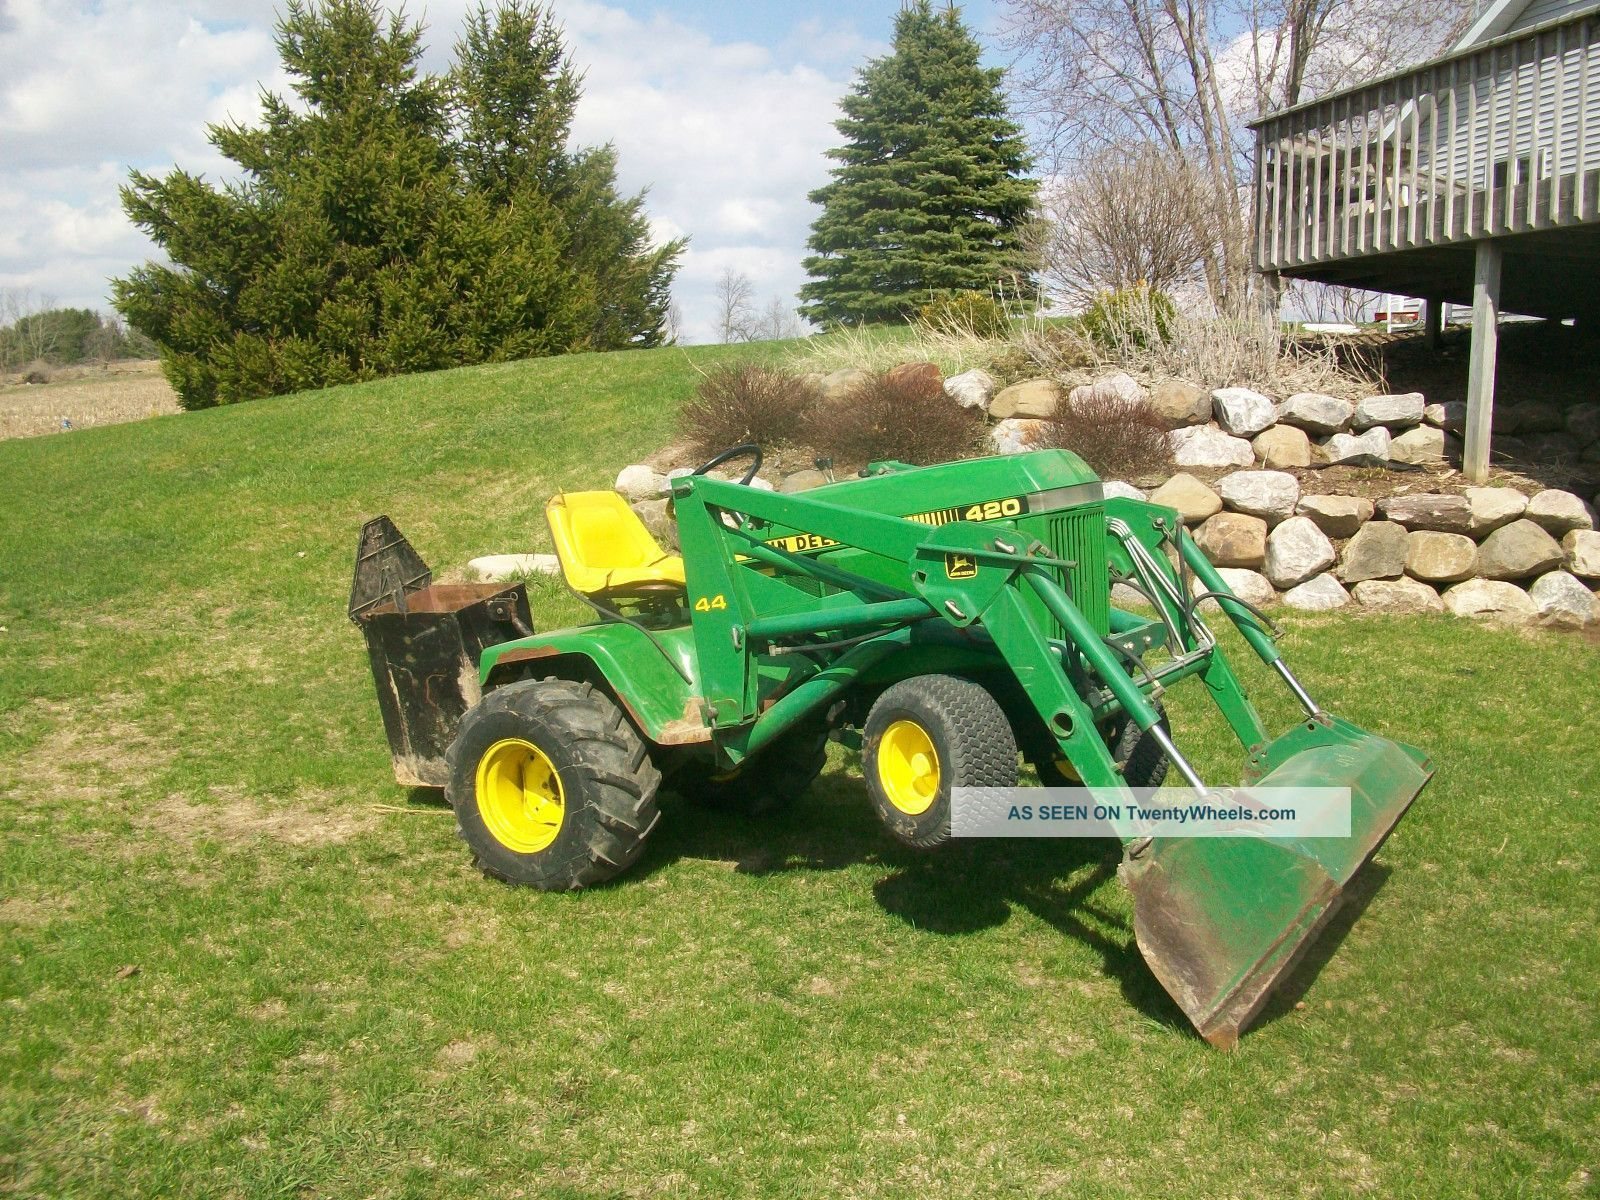 John deere 420 garden tractor john deere 420 garden for Lawn and garden implements